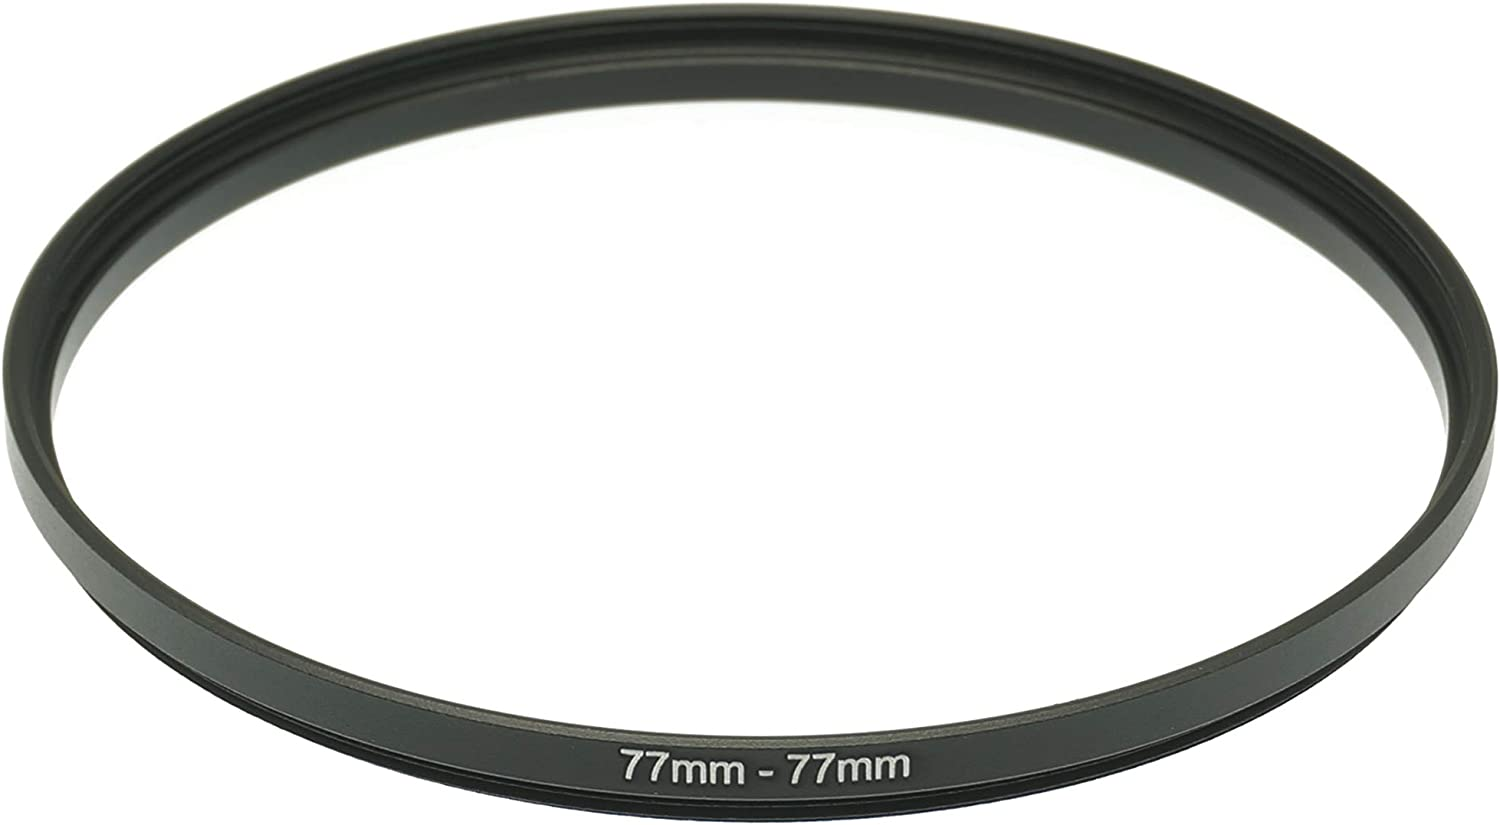 Gadget Place 77mm Diameter Extension Ring//Spacer 3.7mm Long